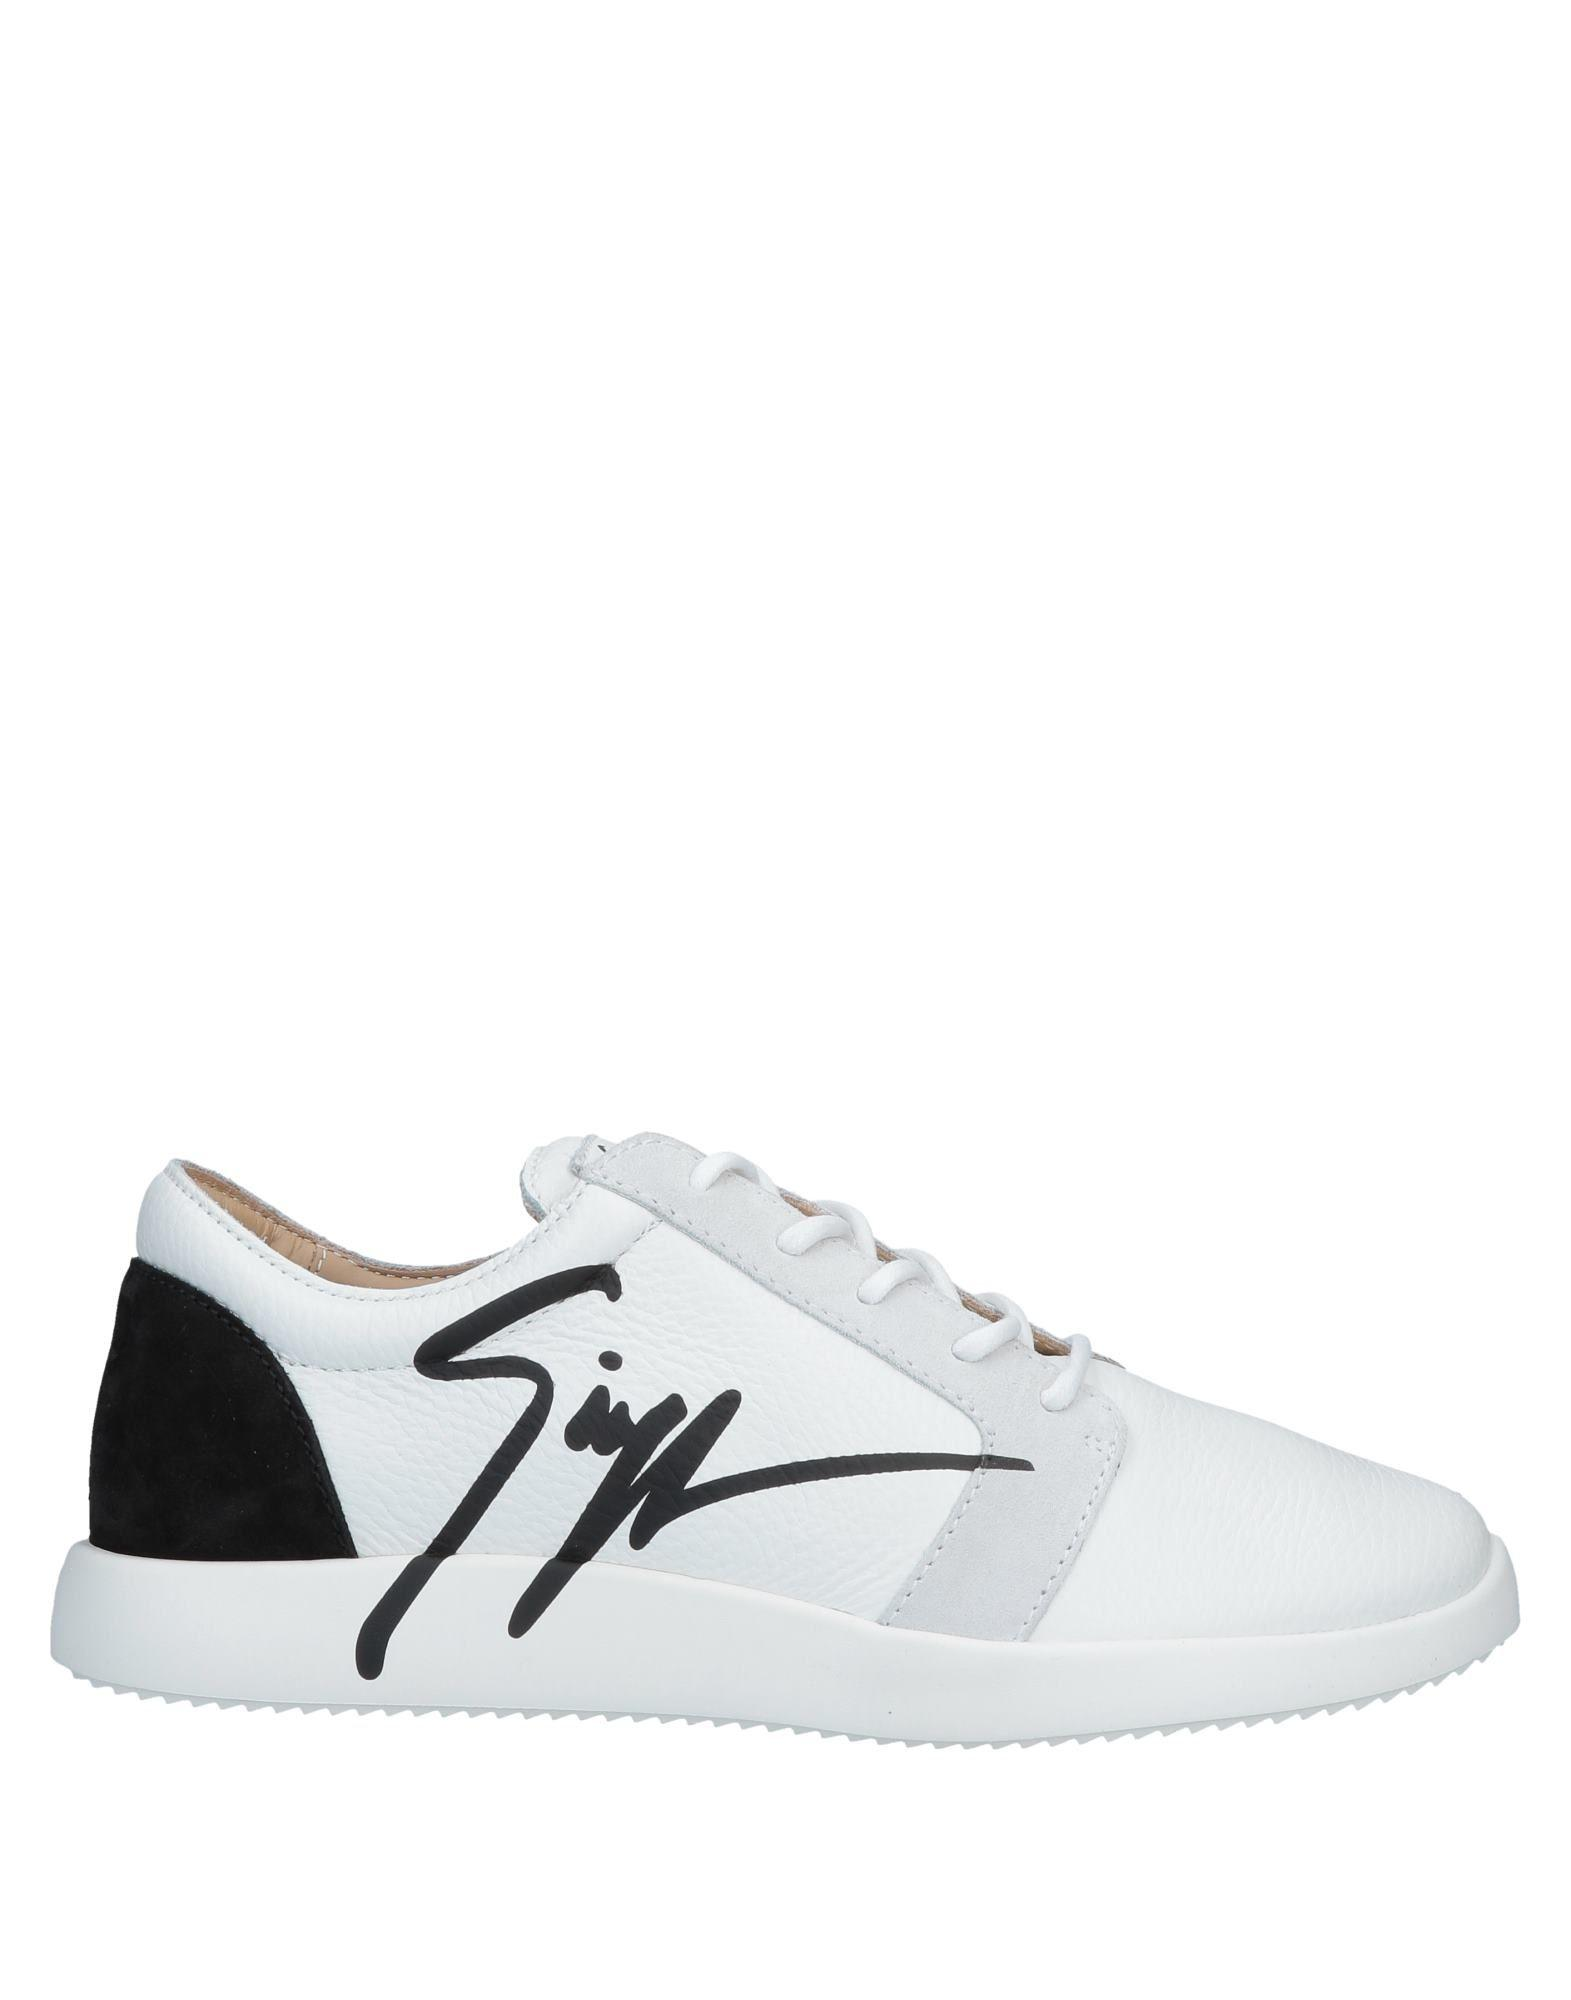 f5459983708c Giuseppe Zanotti G Runner Sneakers in White for Men - Save 69% - Lyst